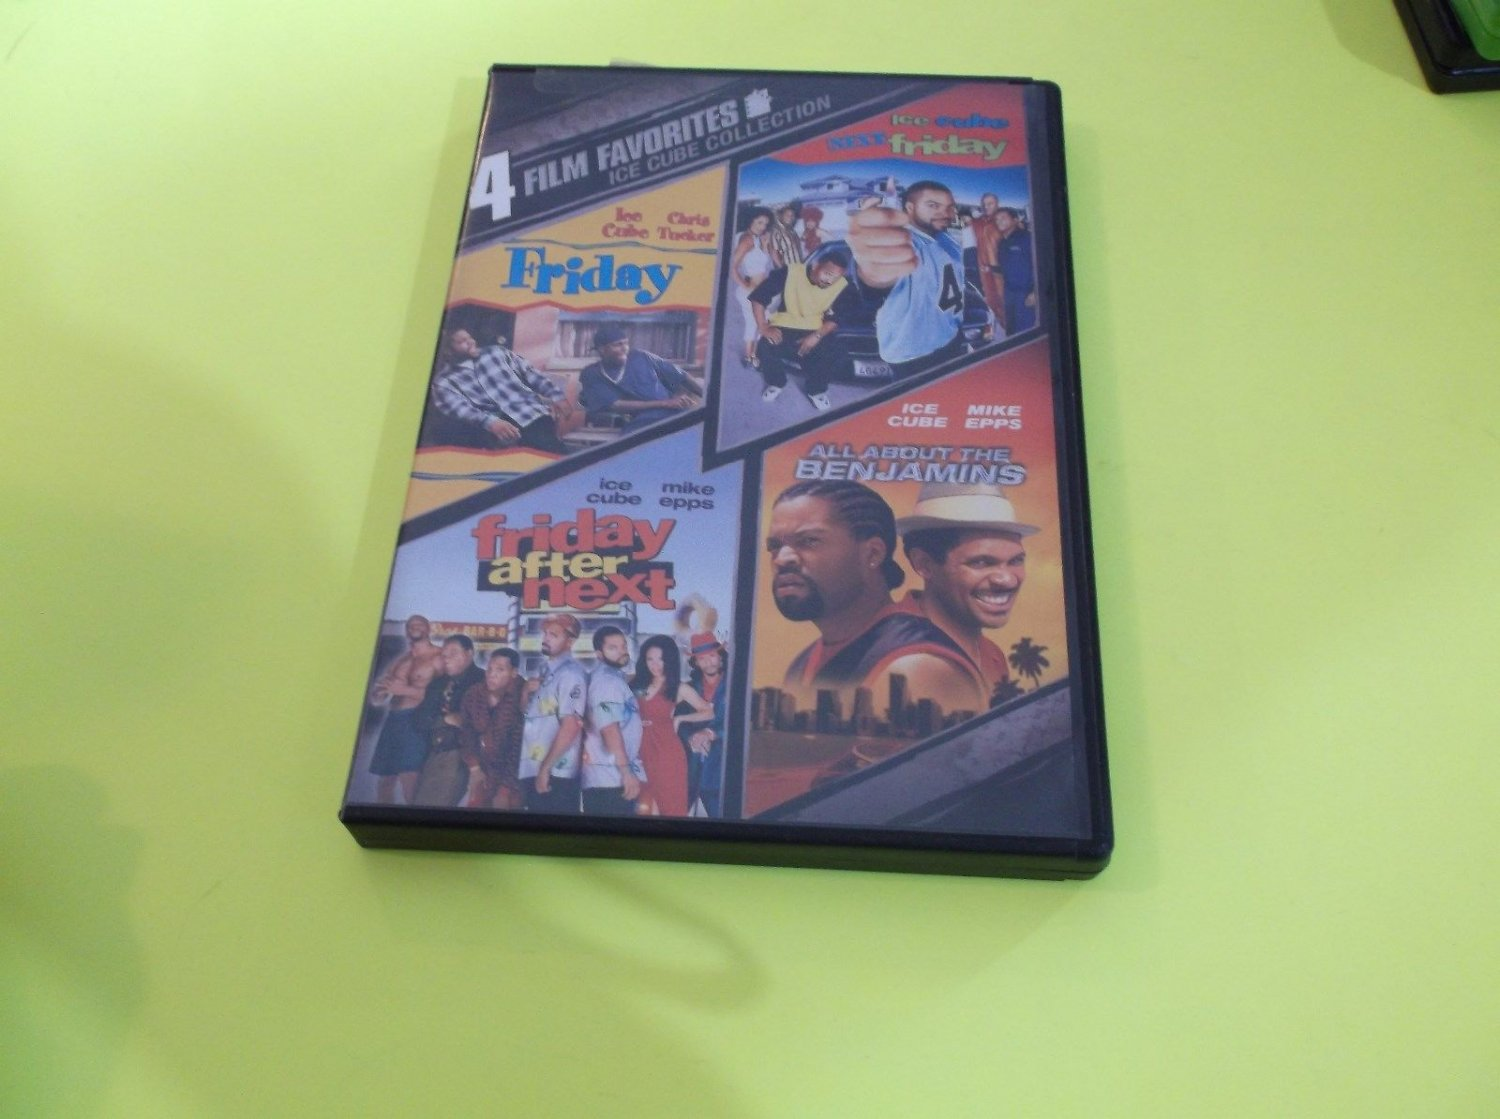 4 Film Favorite - Ice Cube Collection (DVD, 2008, 2-Disc Set)